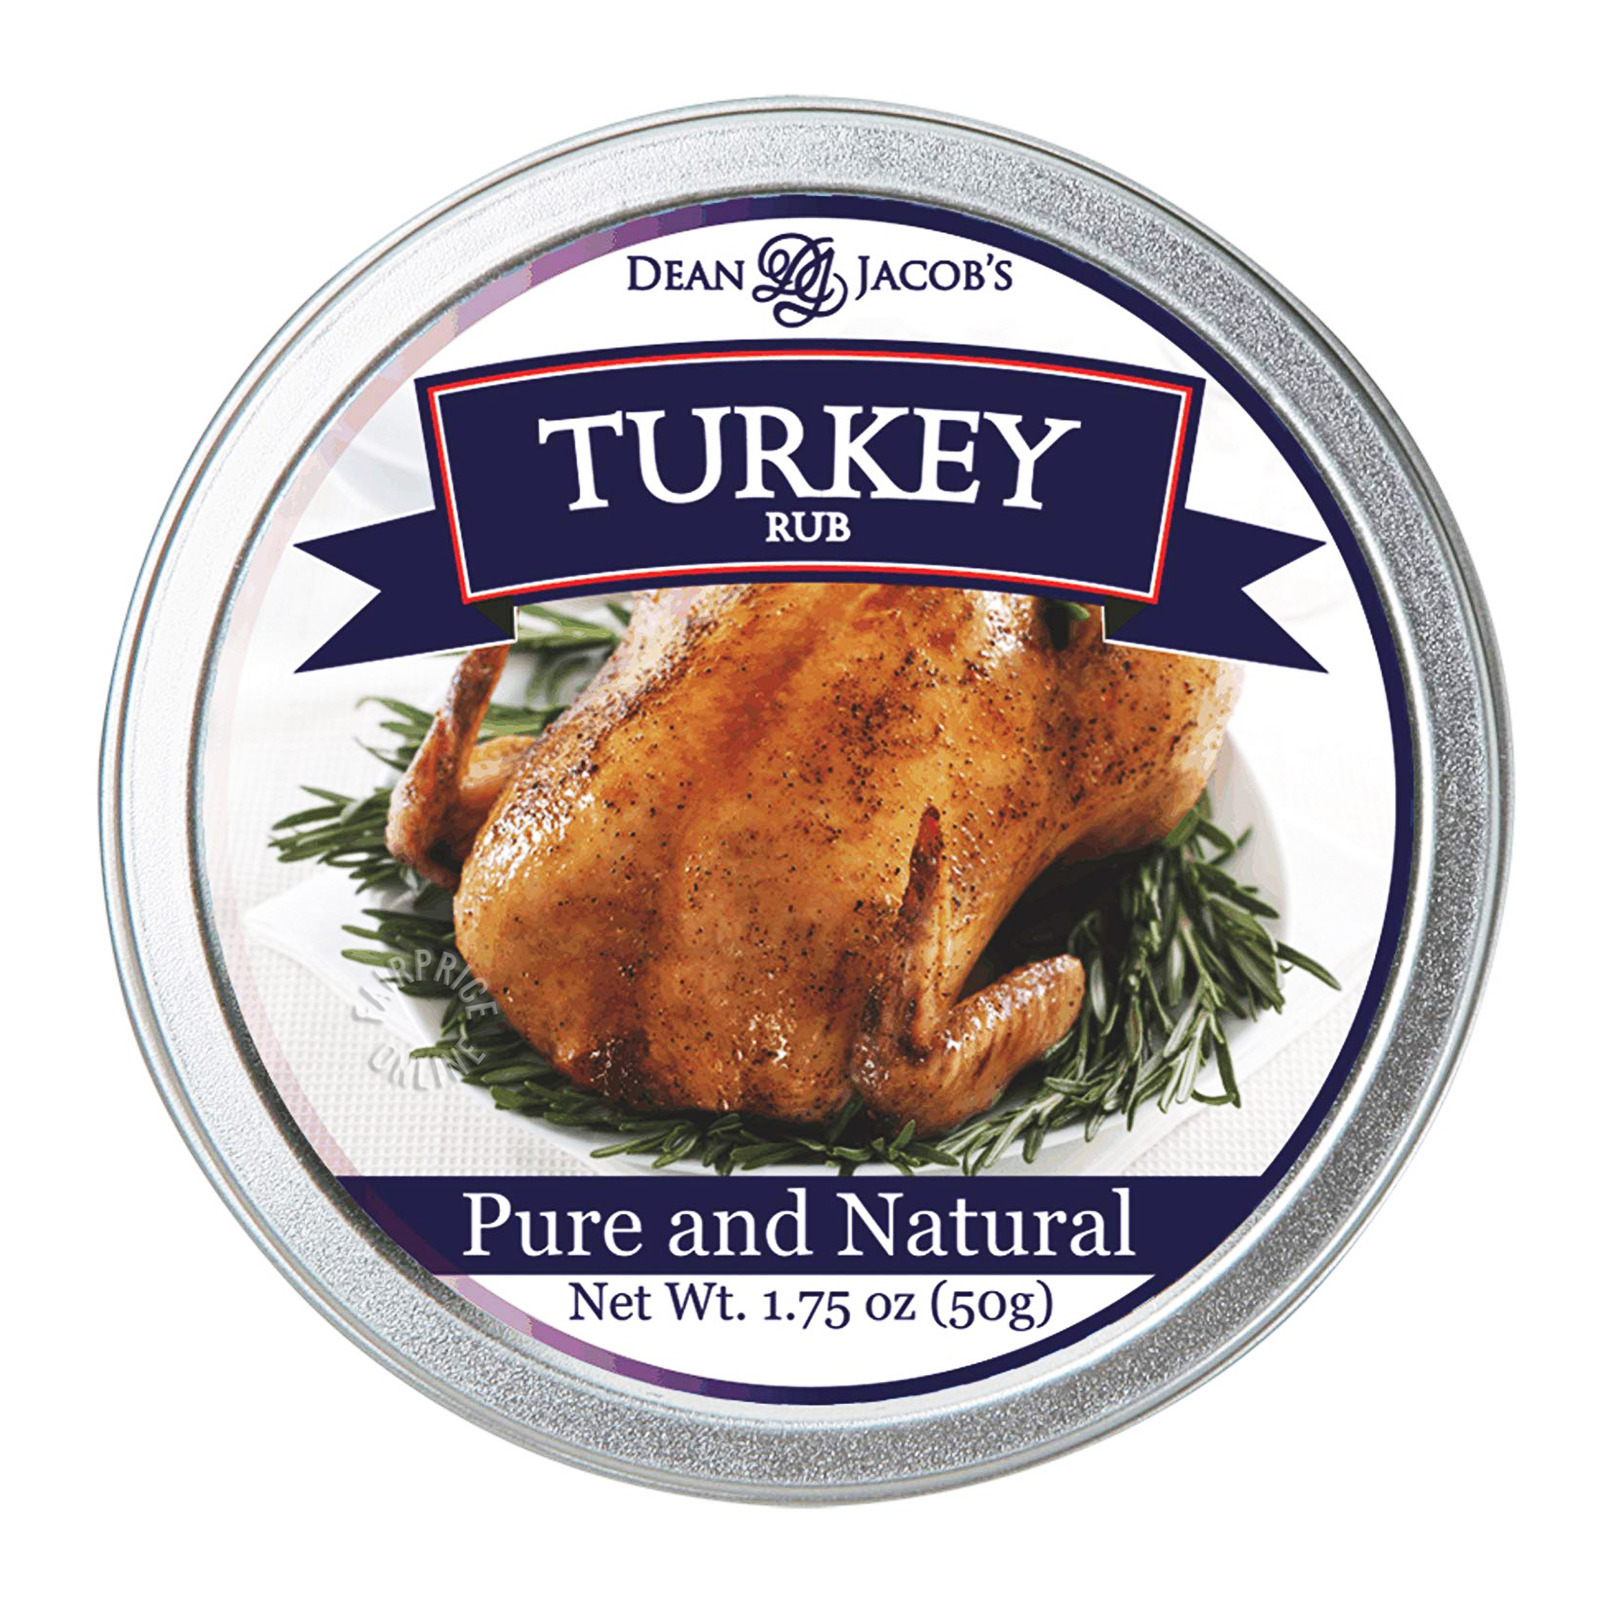 Dean & Jacob's Pure & Natural Turkey Rub